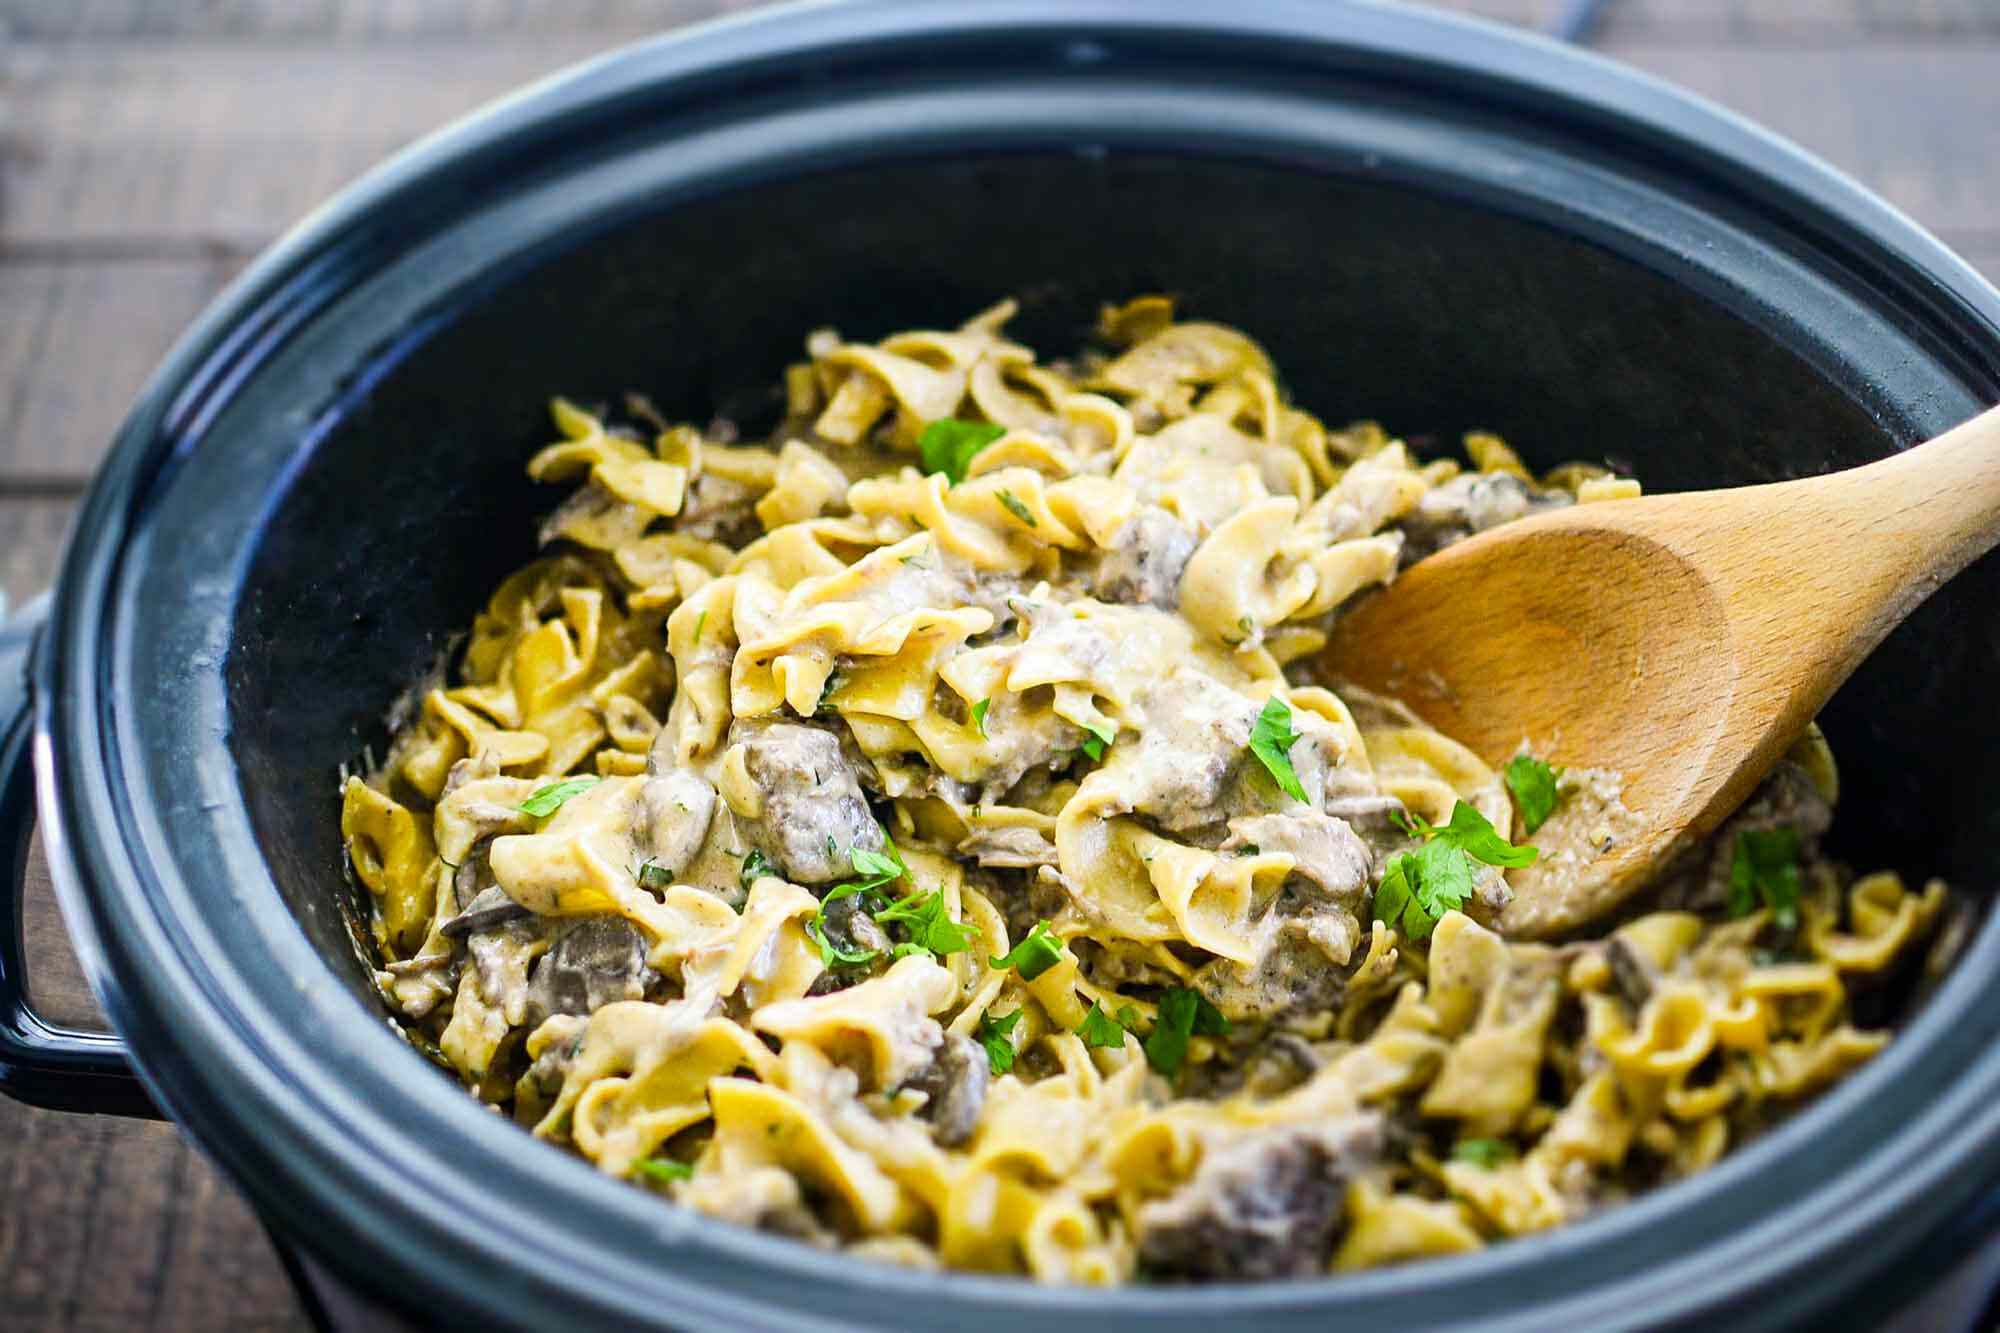 Stir the noodles into the finished crockpot beef stroganoff